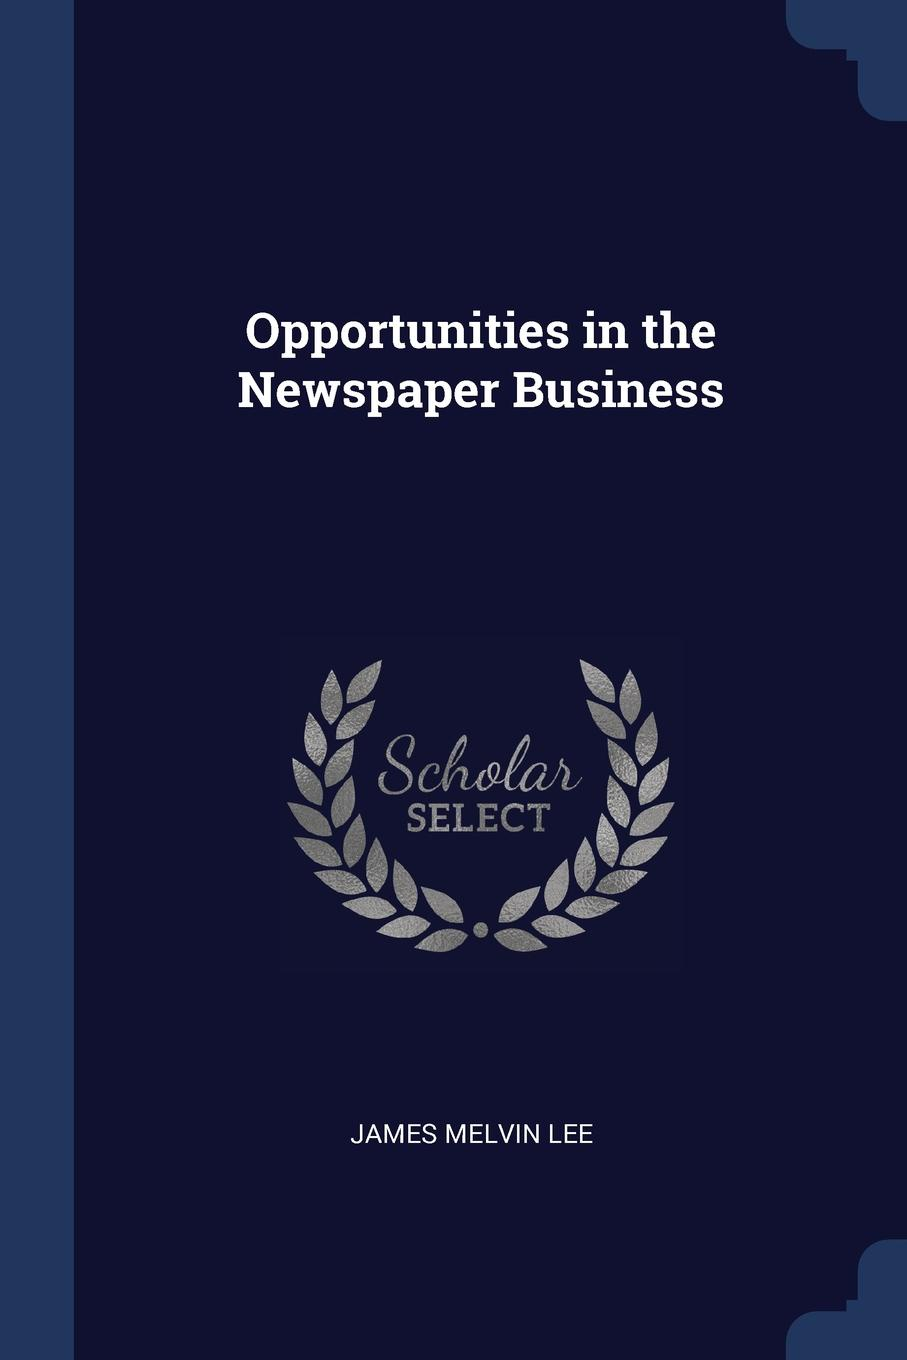 Opportunities in the Newspaper Business. James Melvin Lee